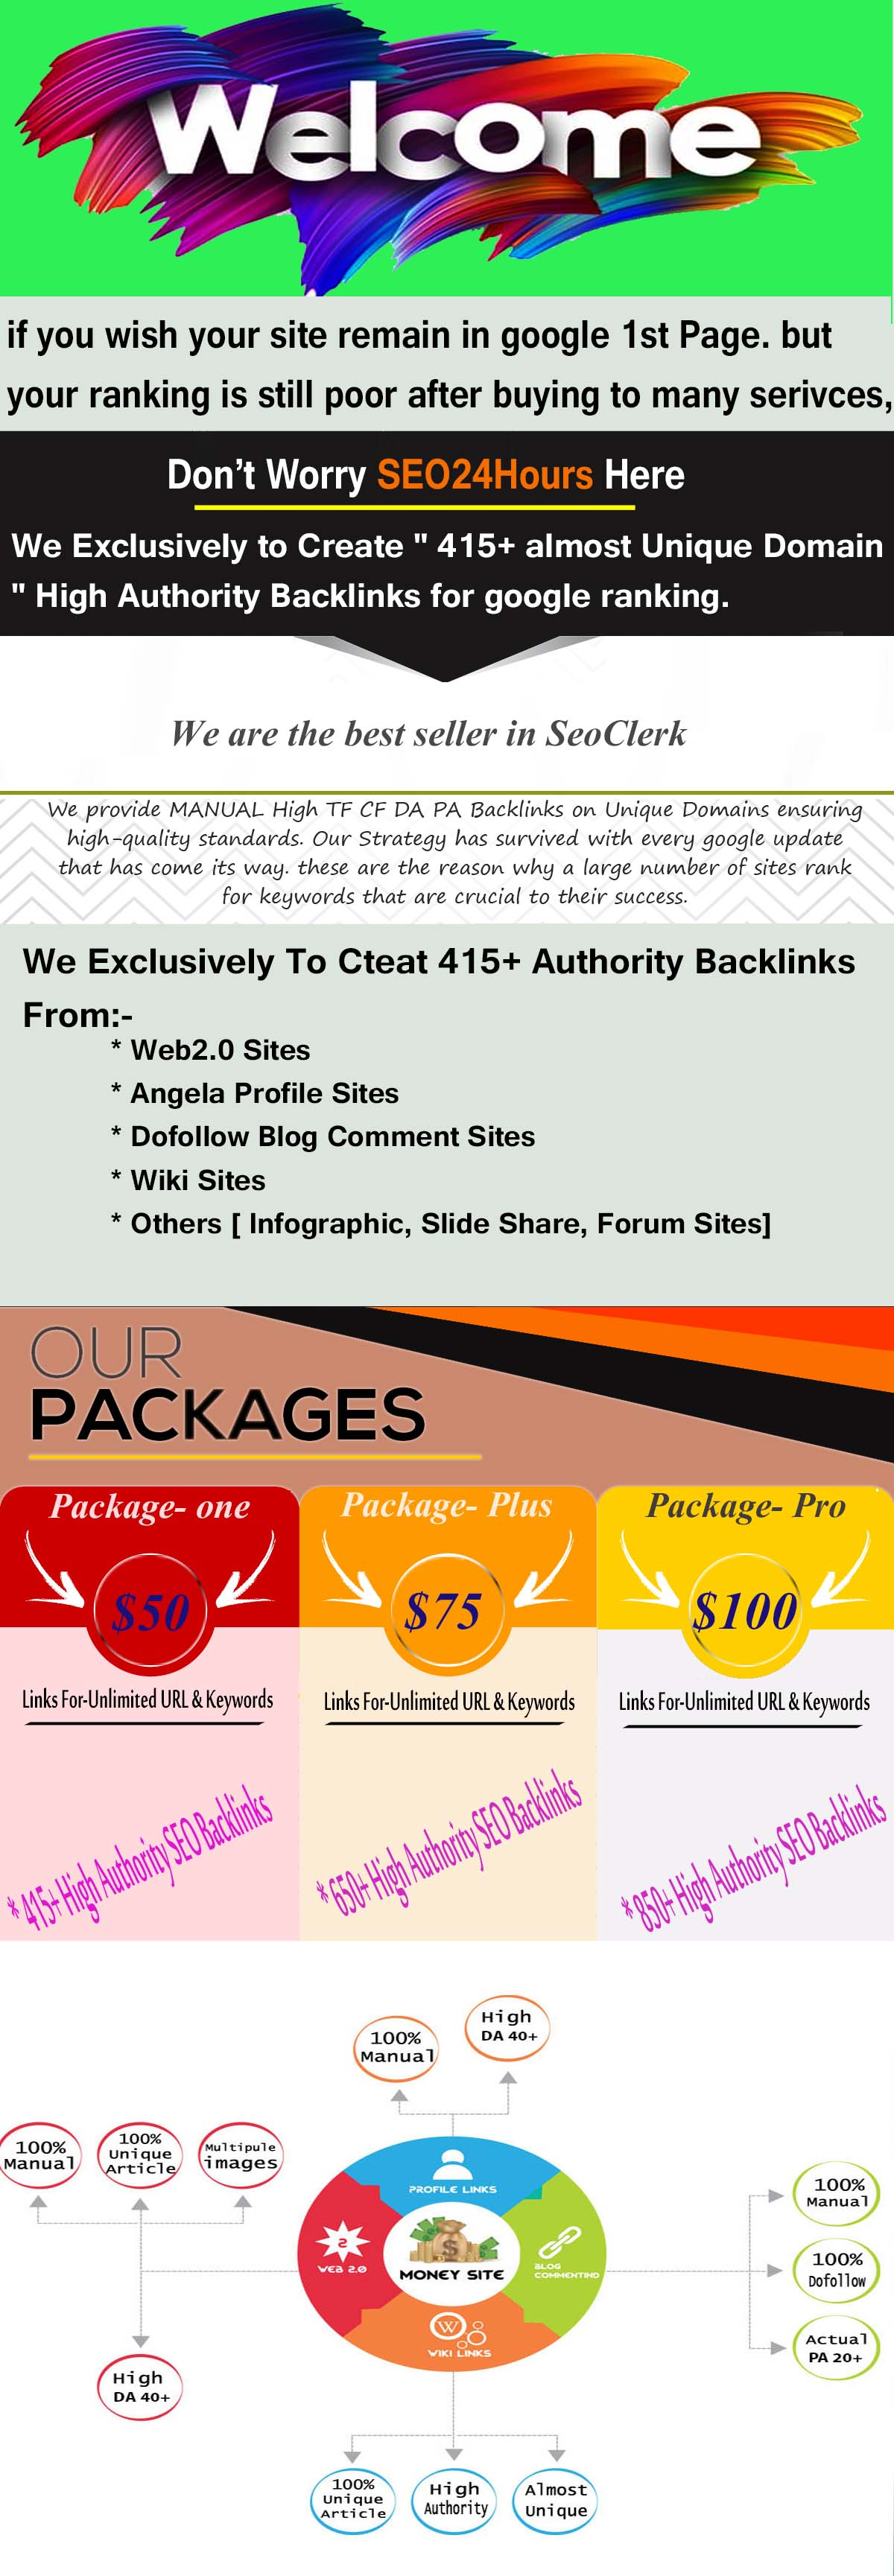 Buy our incredible 415+ High Authority SEO Backlinks & Push your site Google 1st page